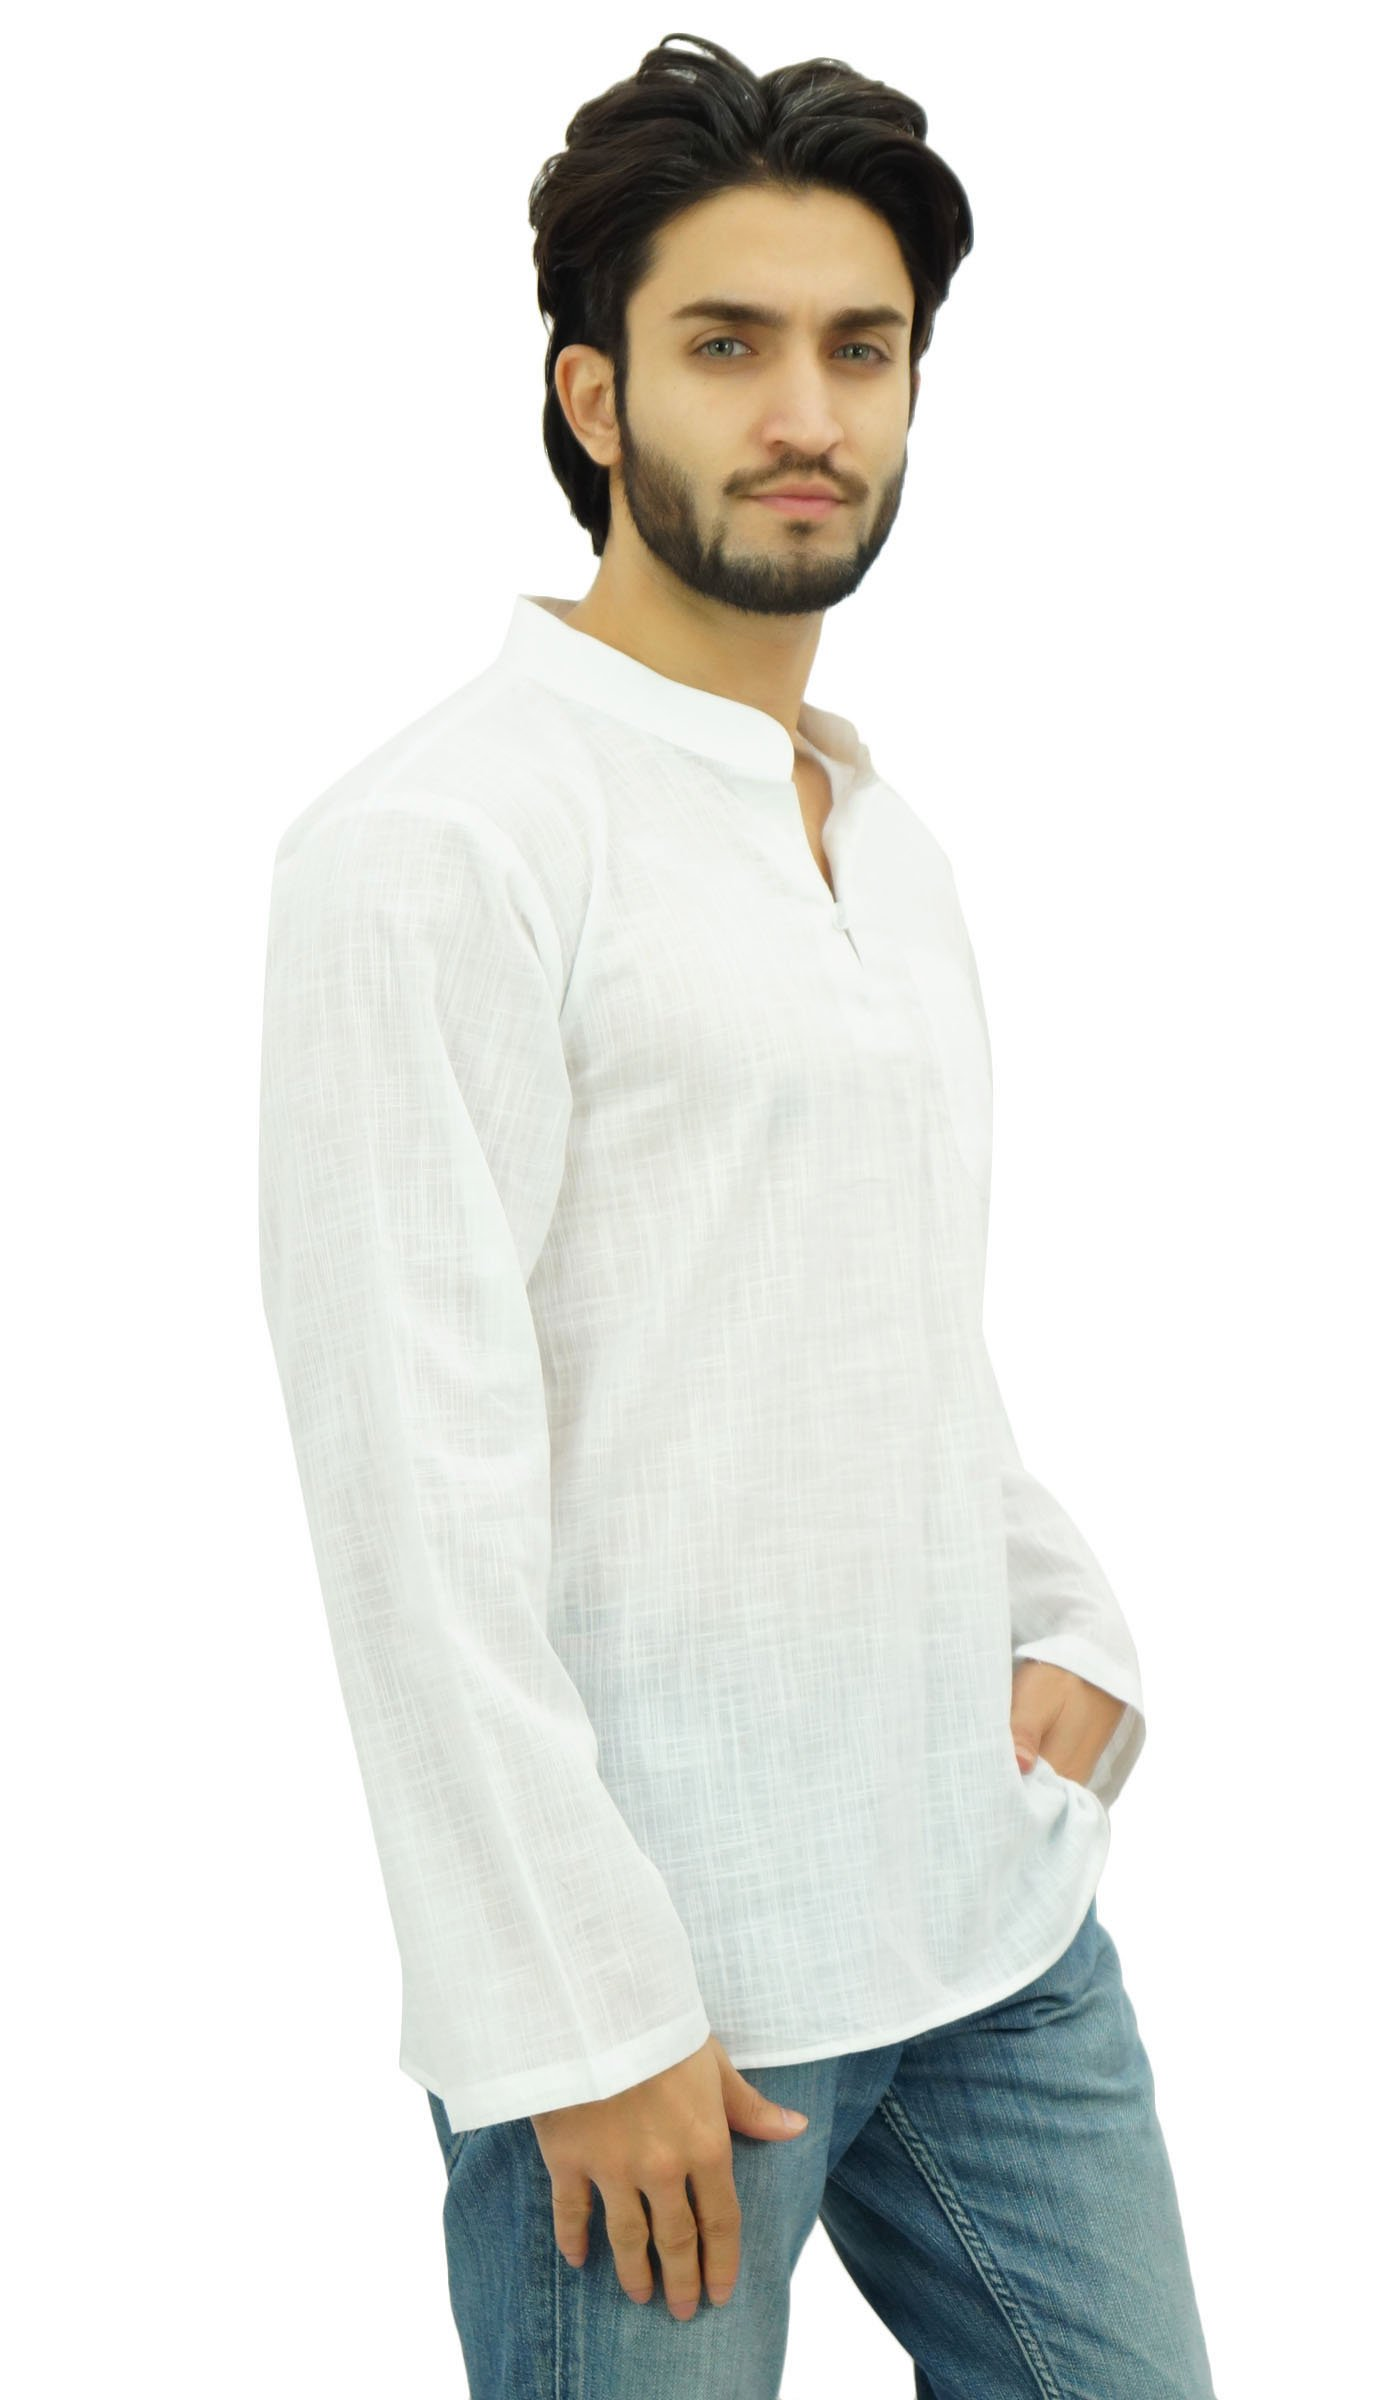 Atasi Men's Band Collar Short Kurta White Cotton Casual Tunic Shirt-Large by Atasi (Image #2)